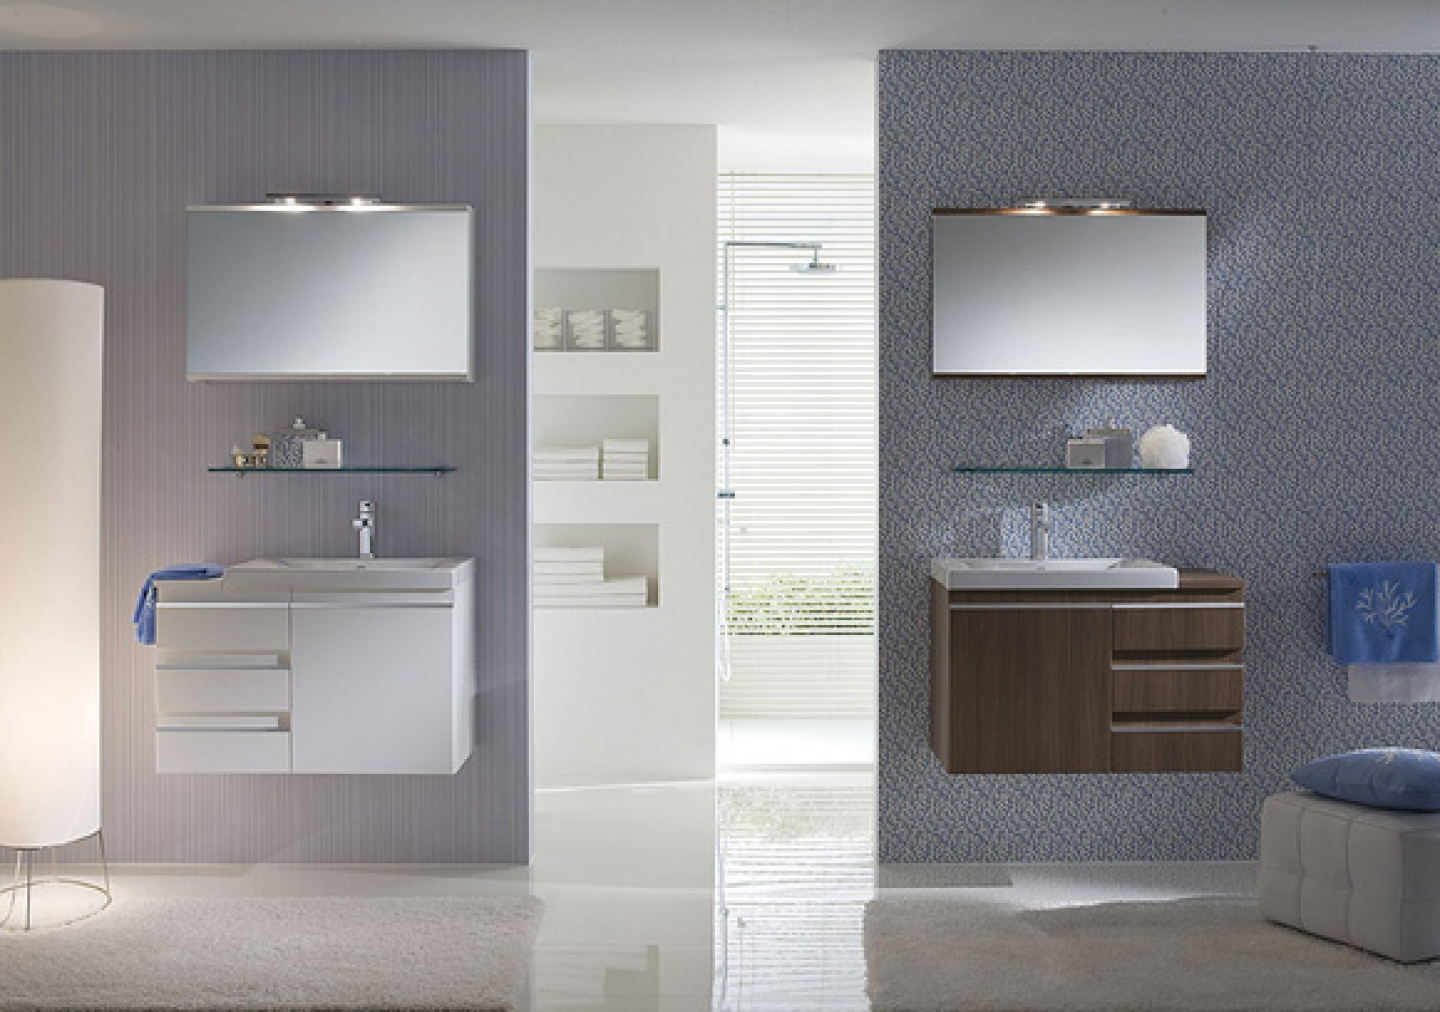 Images of Glass Shelf Idea on Fancy Small Bathroom Vanity Plus Floating Cabinet  Design small floating bathroom vanity